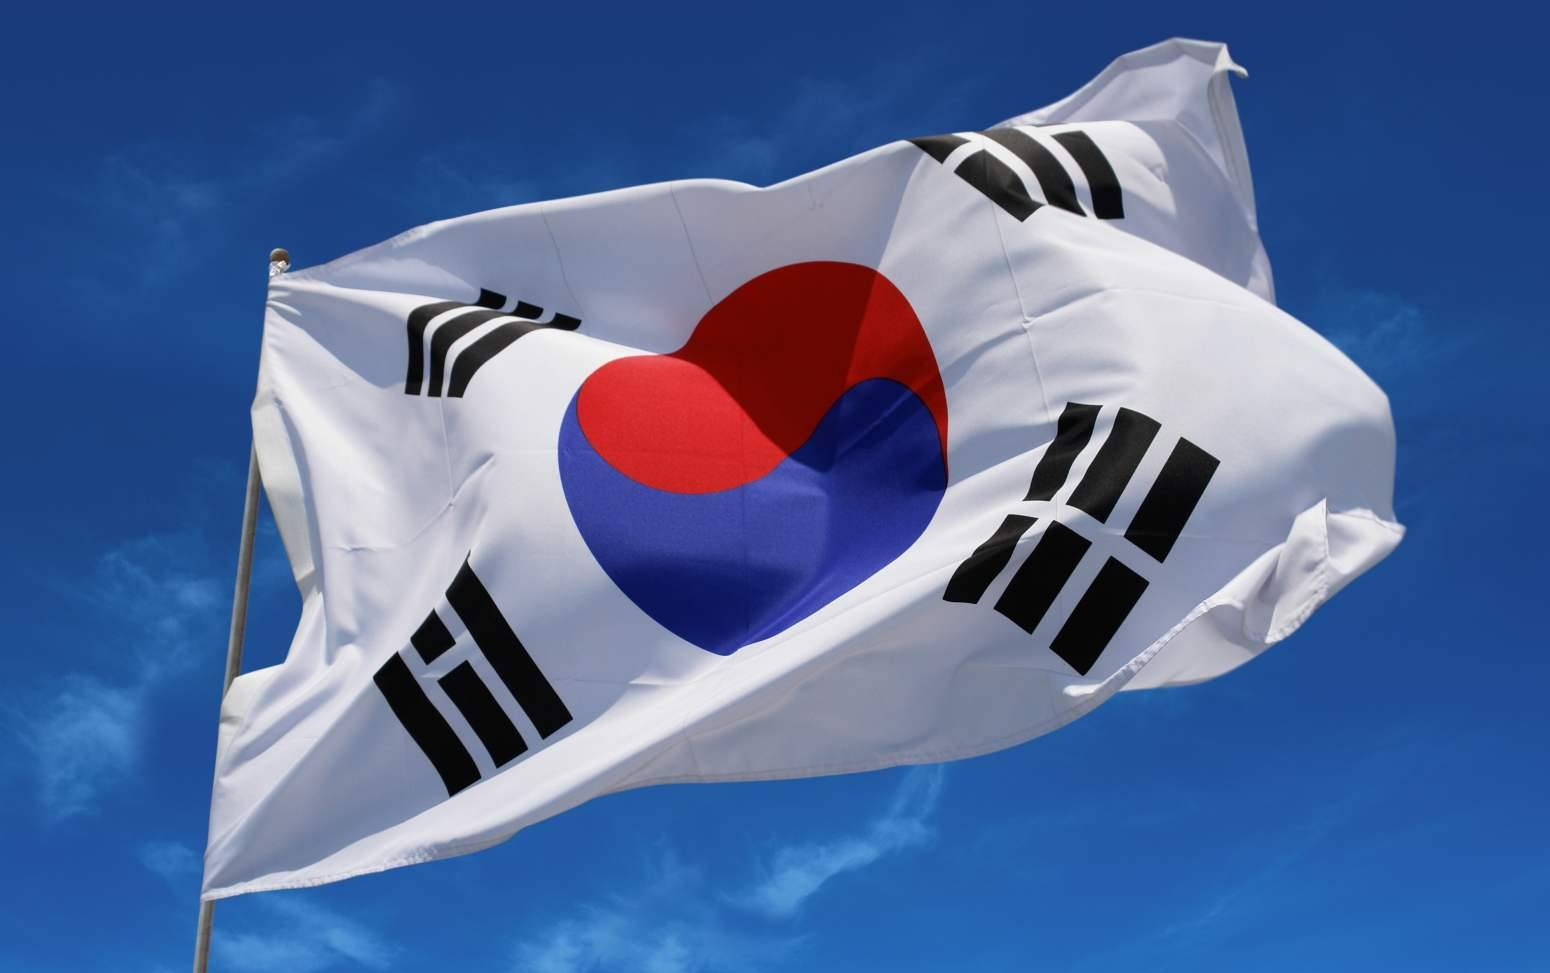 South Korea's Democratic Party Lawmaker Urges Authorities to 'Open Up the Road' to ICOs